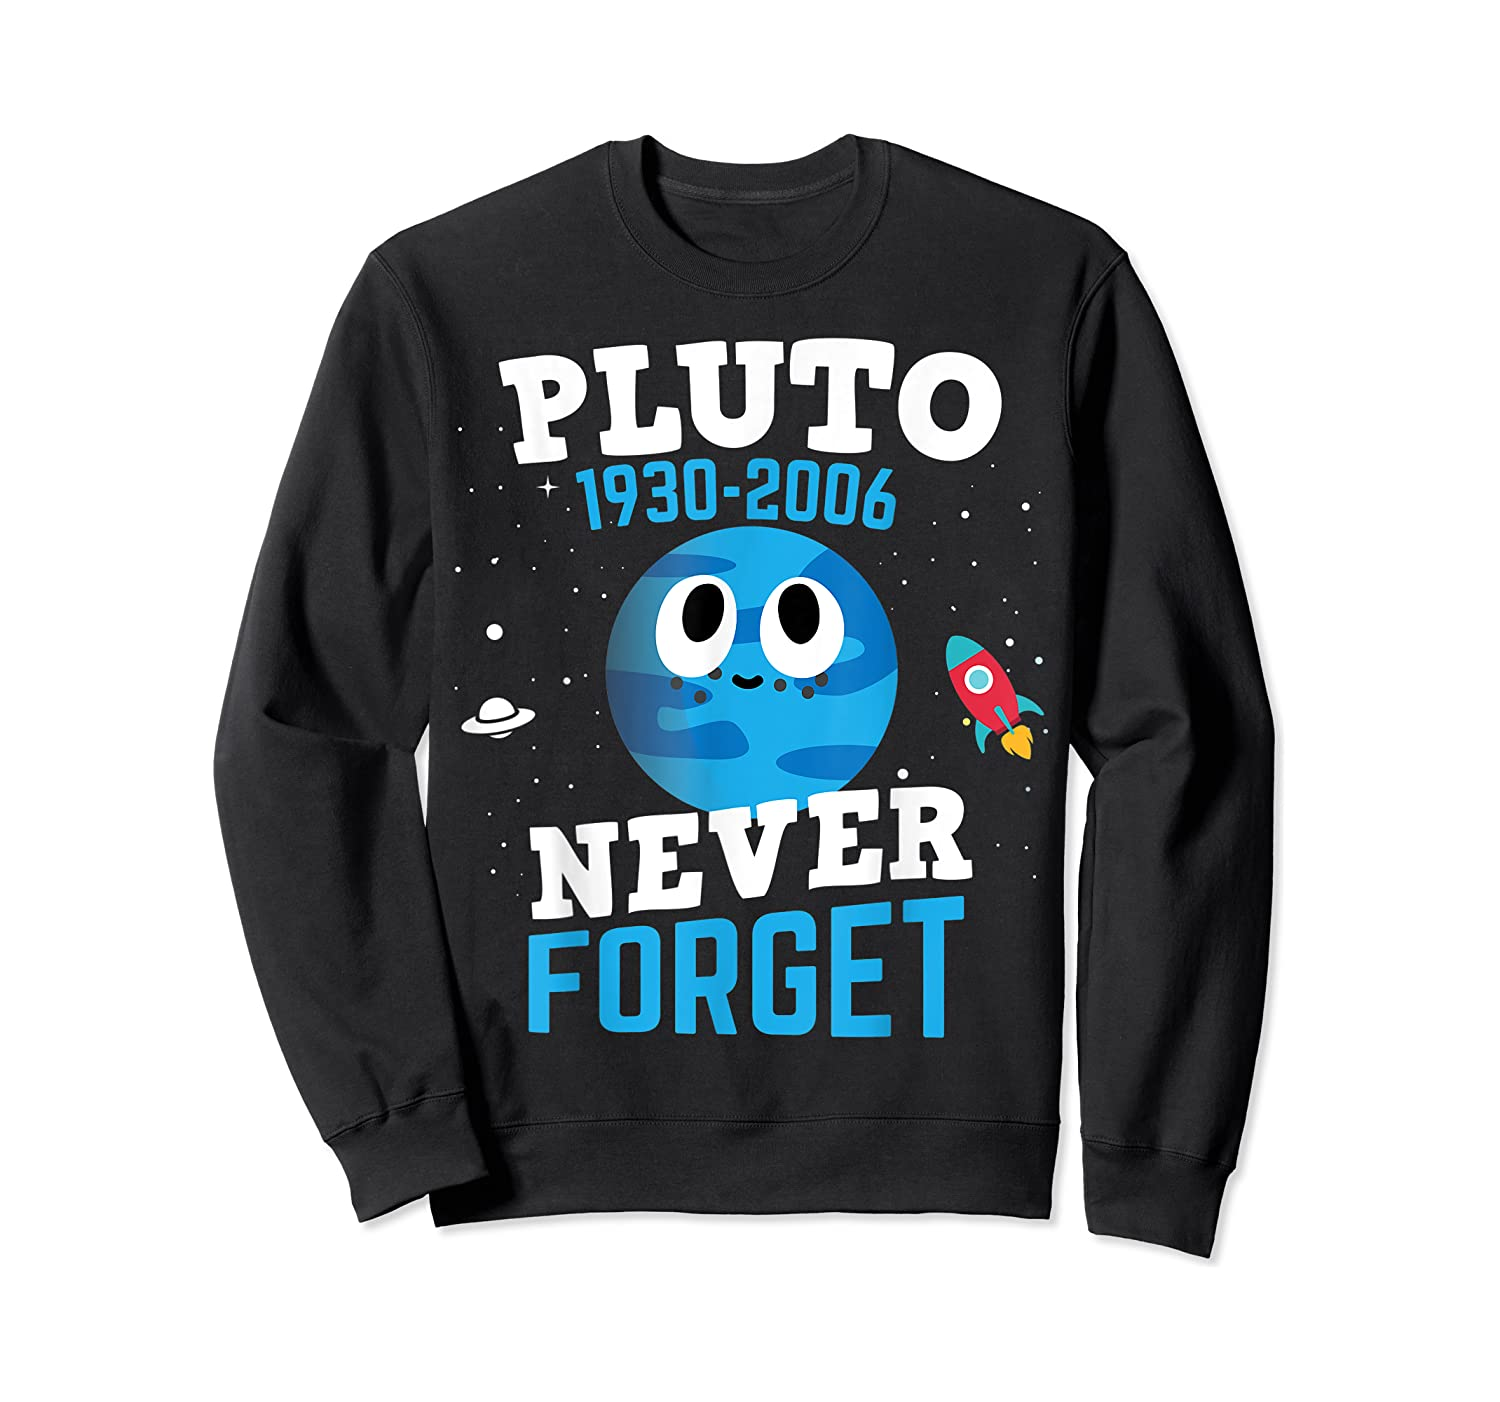 Pluto Never Forge Astronomy Science Space Geek Shirts Crewneck Sweater